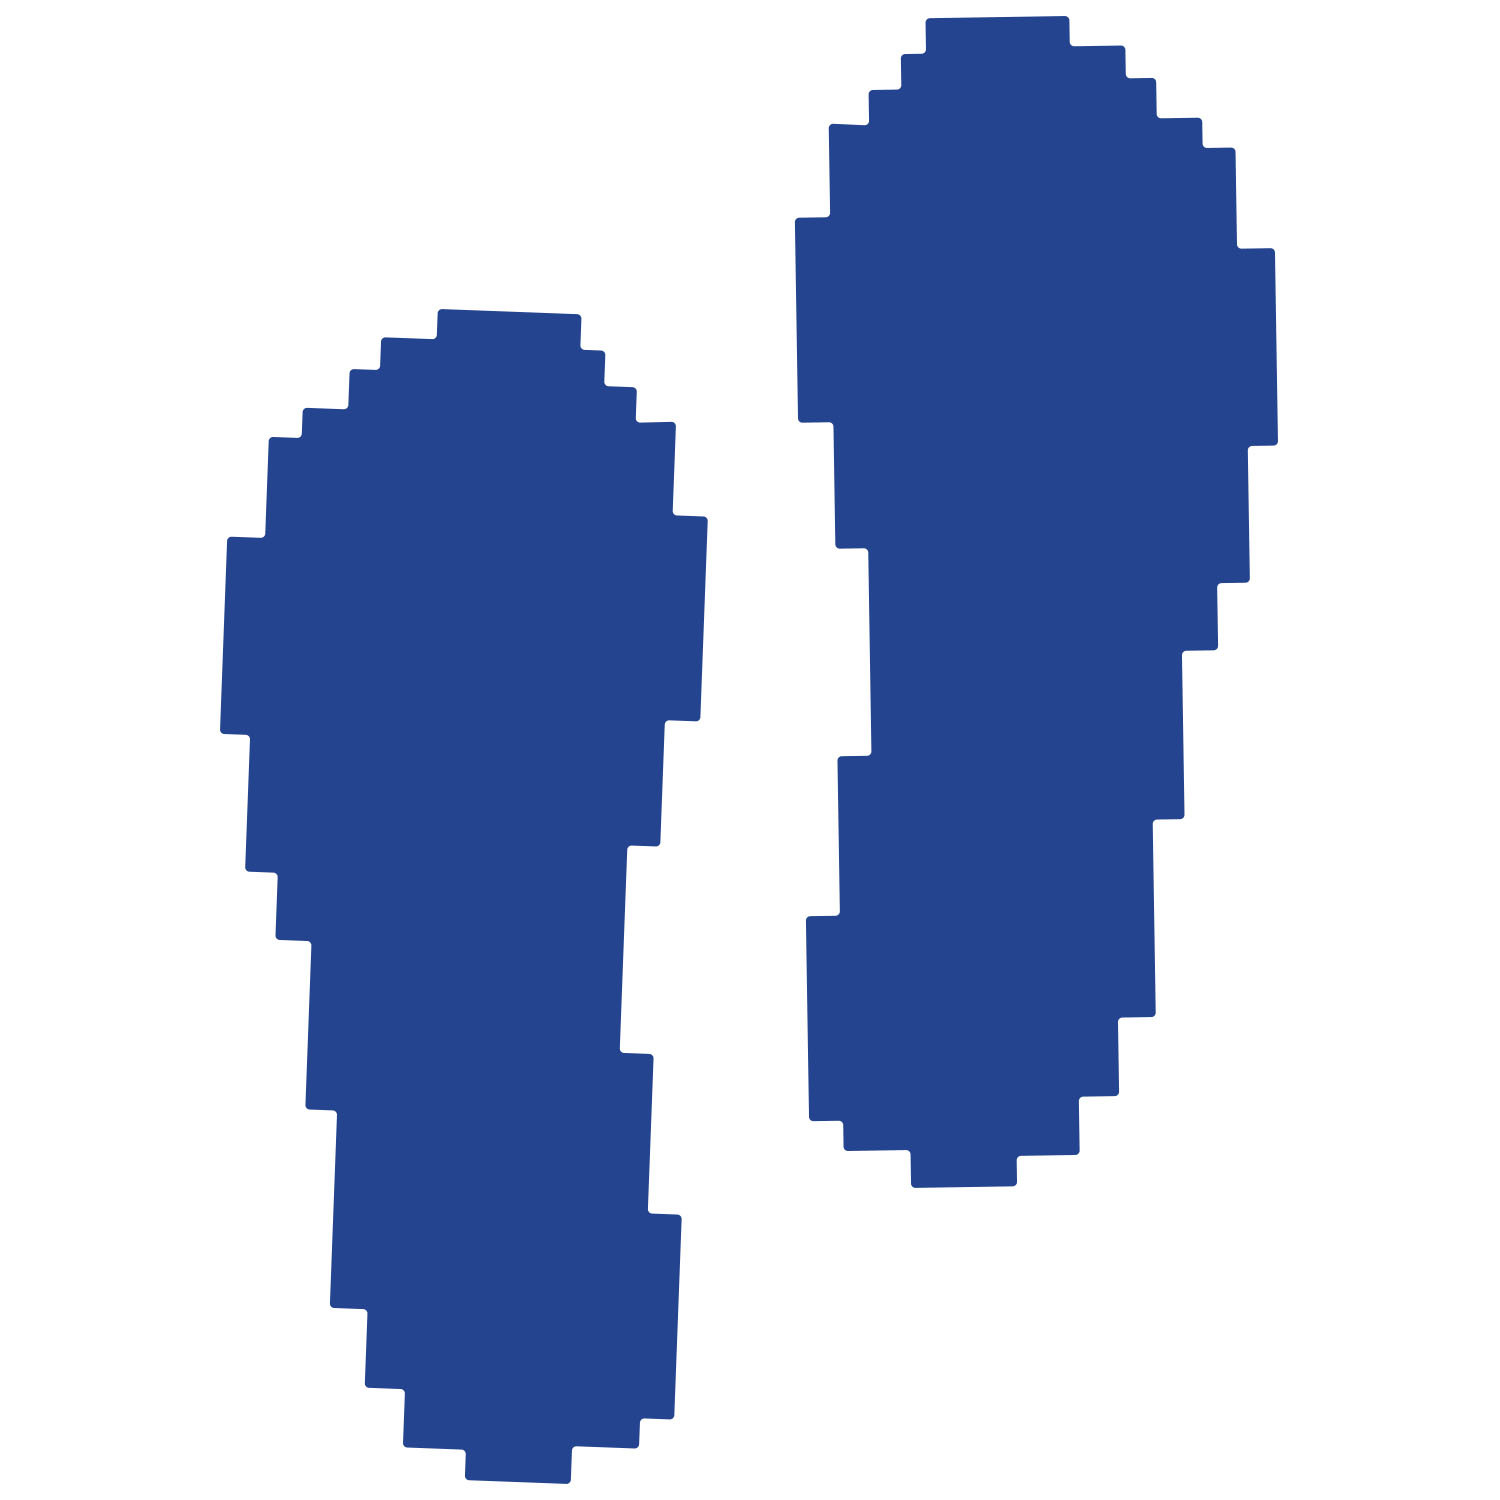 Primary image for LiteMark Blue Pixelized Footprint Decal Stickers - Pack of 12